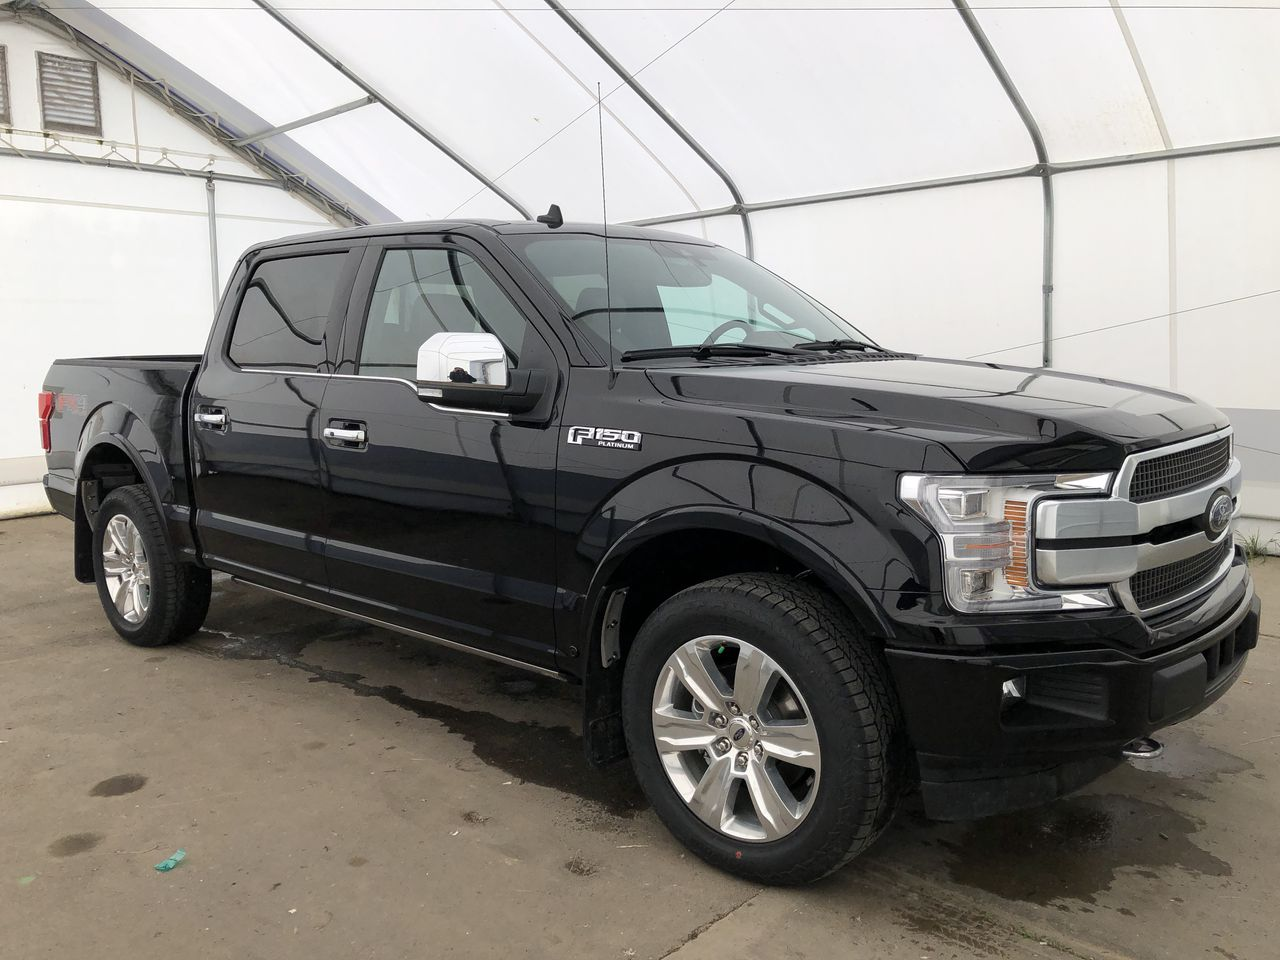 2020 Ford F-150 Platinum (0N6747) Main Image